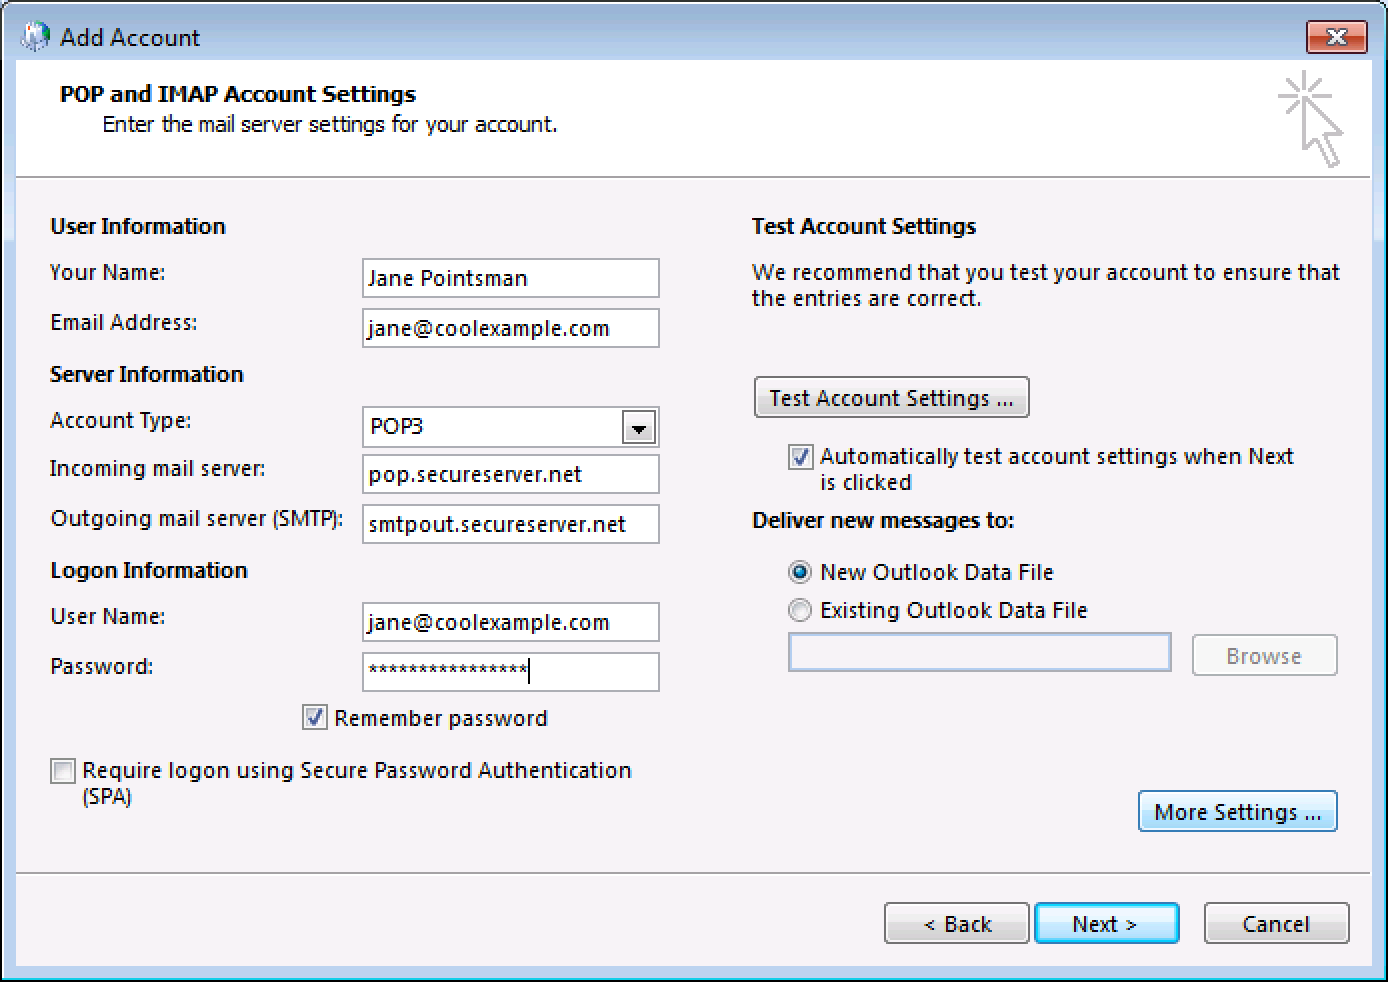 Enter email account settings